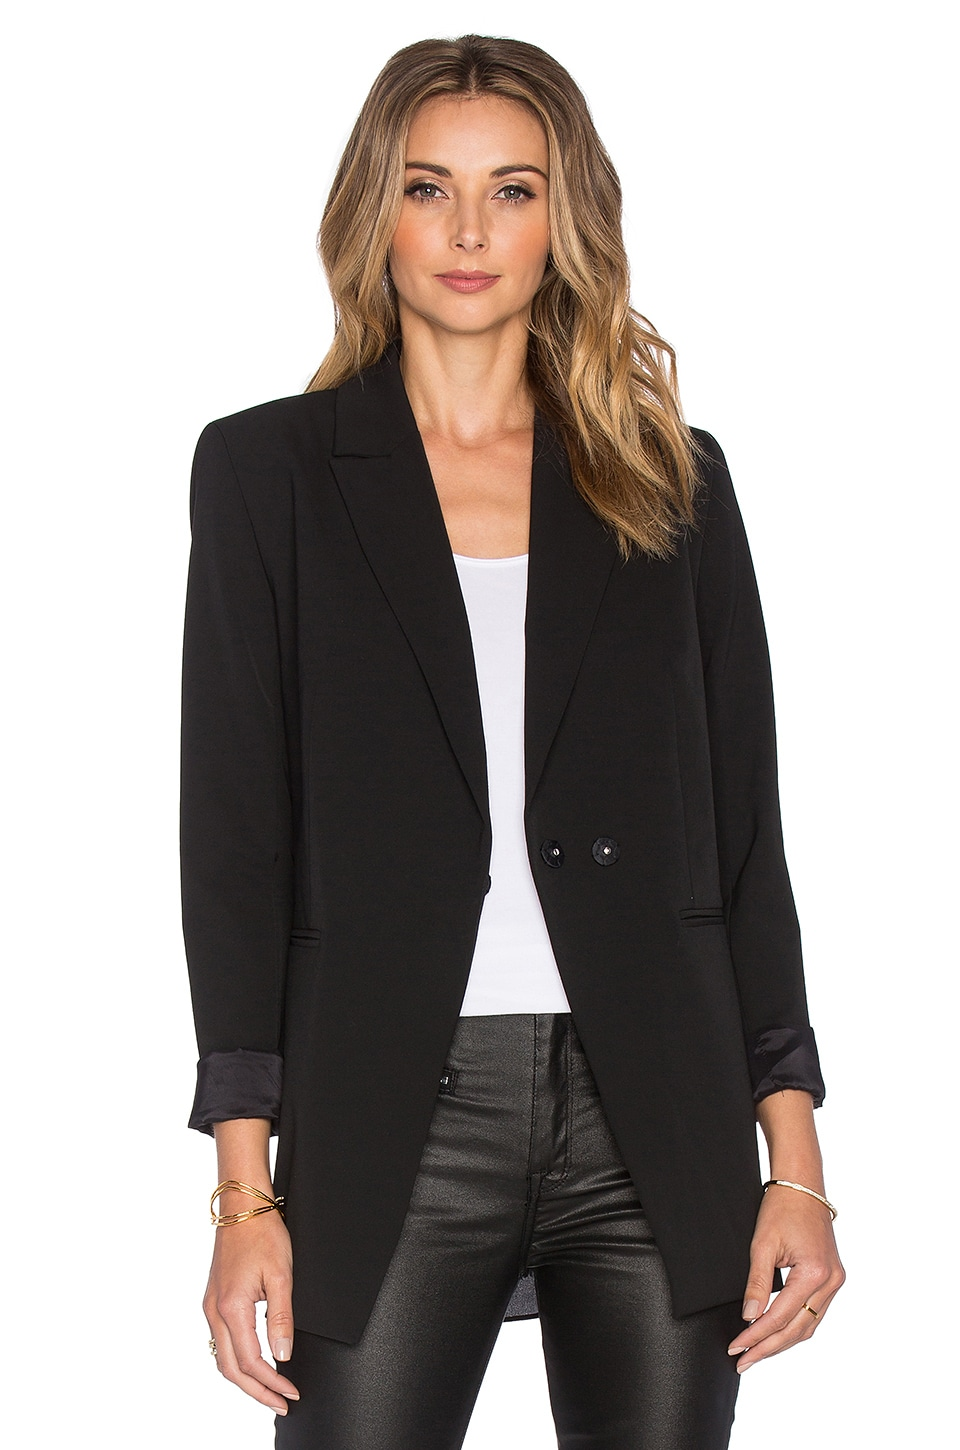 OLCAY GULSEN Tailored Georgette Blazer in Black